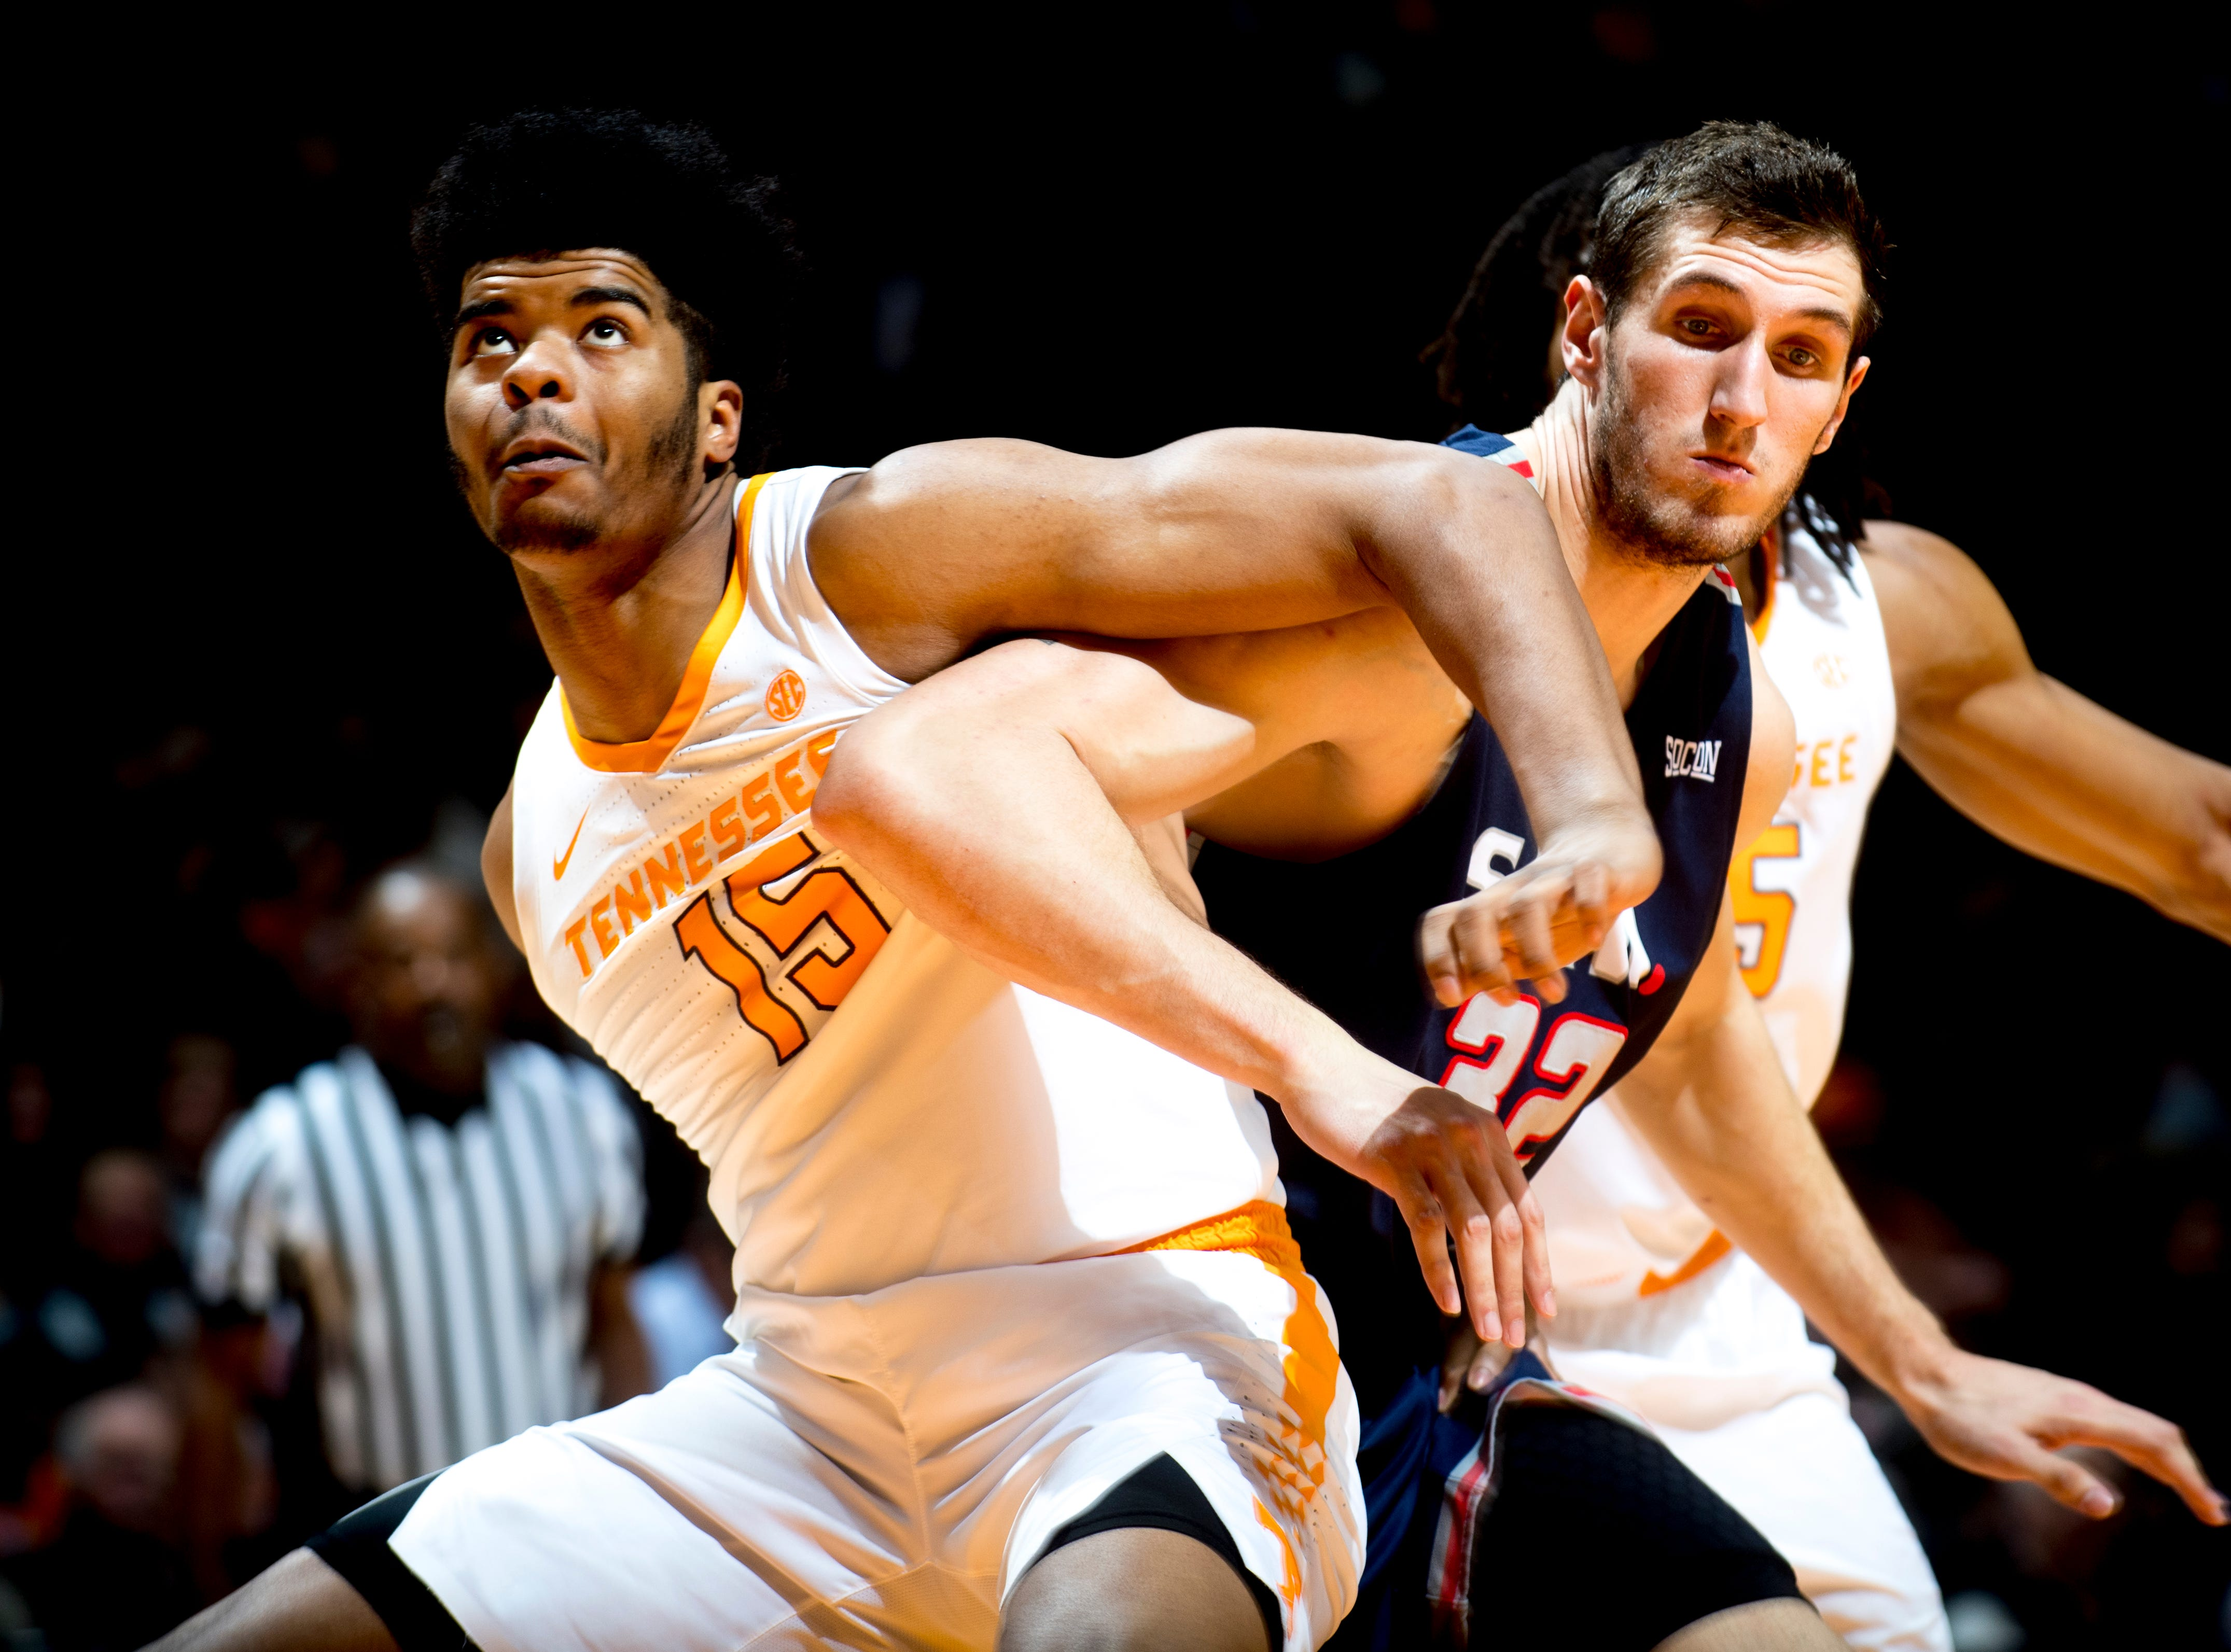 Tennessee forward Derrick Walker (15)  and Samford forward Logan Dye (22) battle for the rebound during a game between Tennessee and Samford at Thompson-Boling Arena in Knoxville, Tennessee on Wednesday, December 19, 2018.